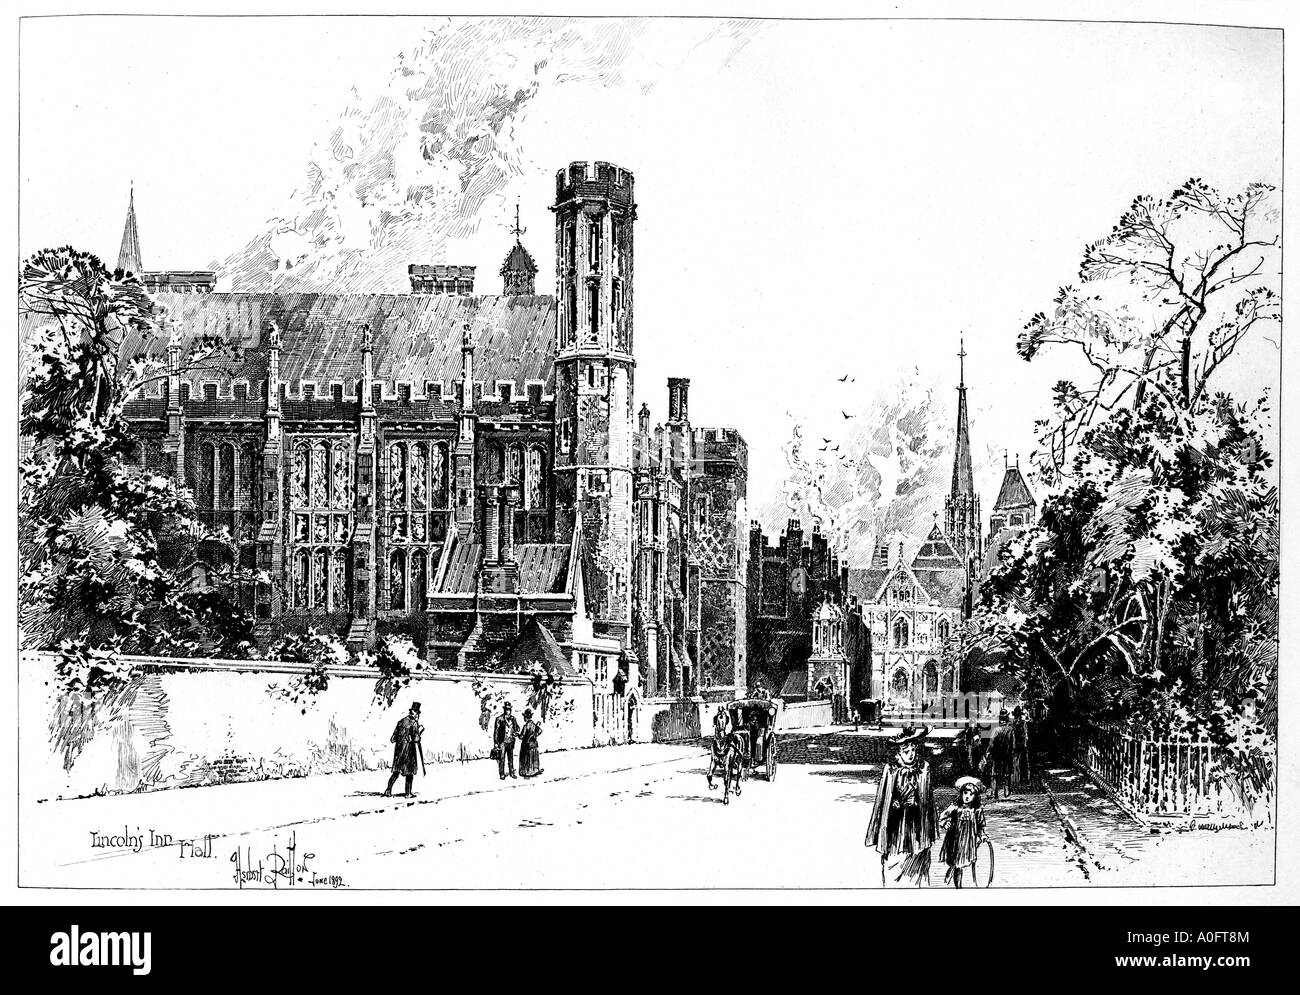 Lincolns Inn Hall 1892 Late Victorian engraving by Herbert Railton of the Hall in the London home for barristers - Stock Image